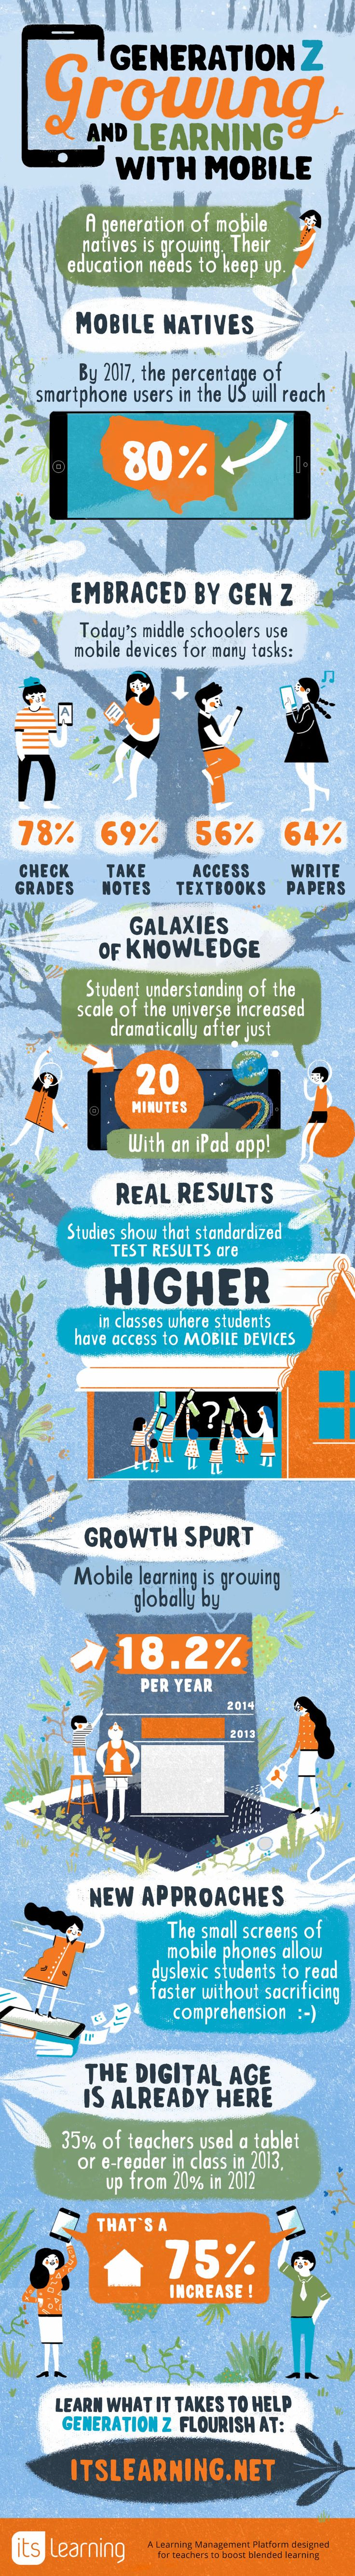 51 best Mobile Learning images on Pinterest | Mobile learning ...